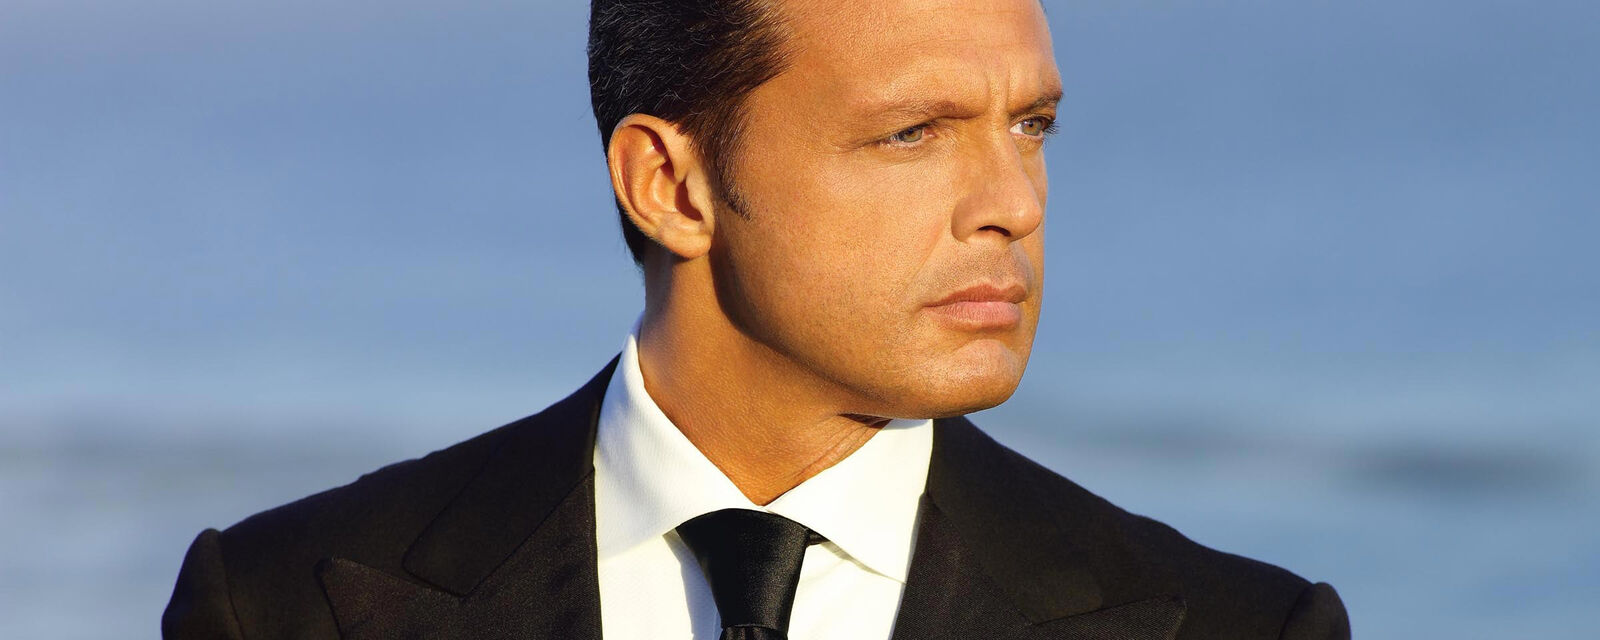 PARKING PASSES ONLY Luis Miguel